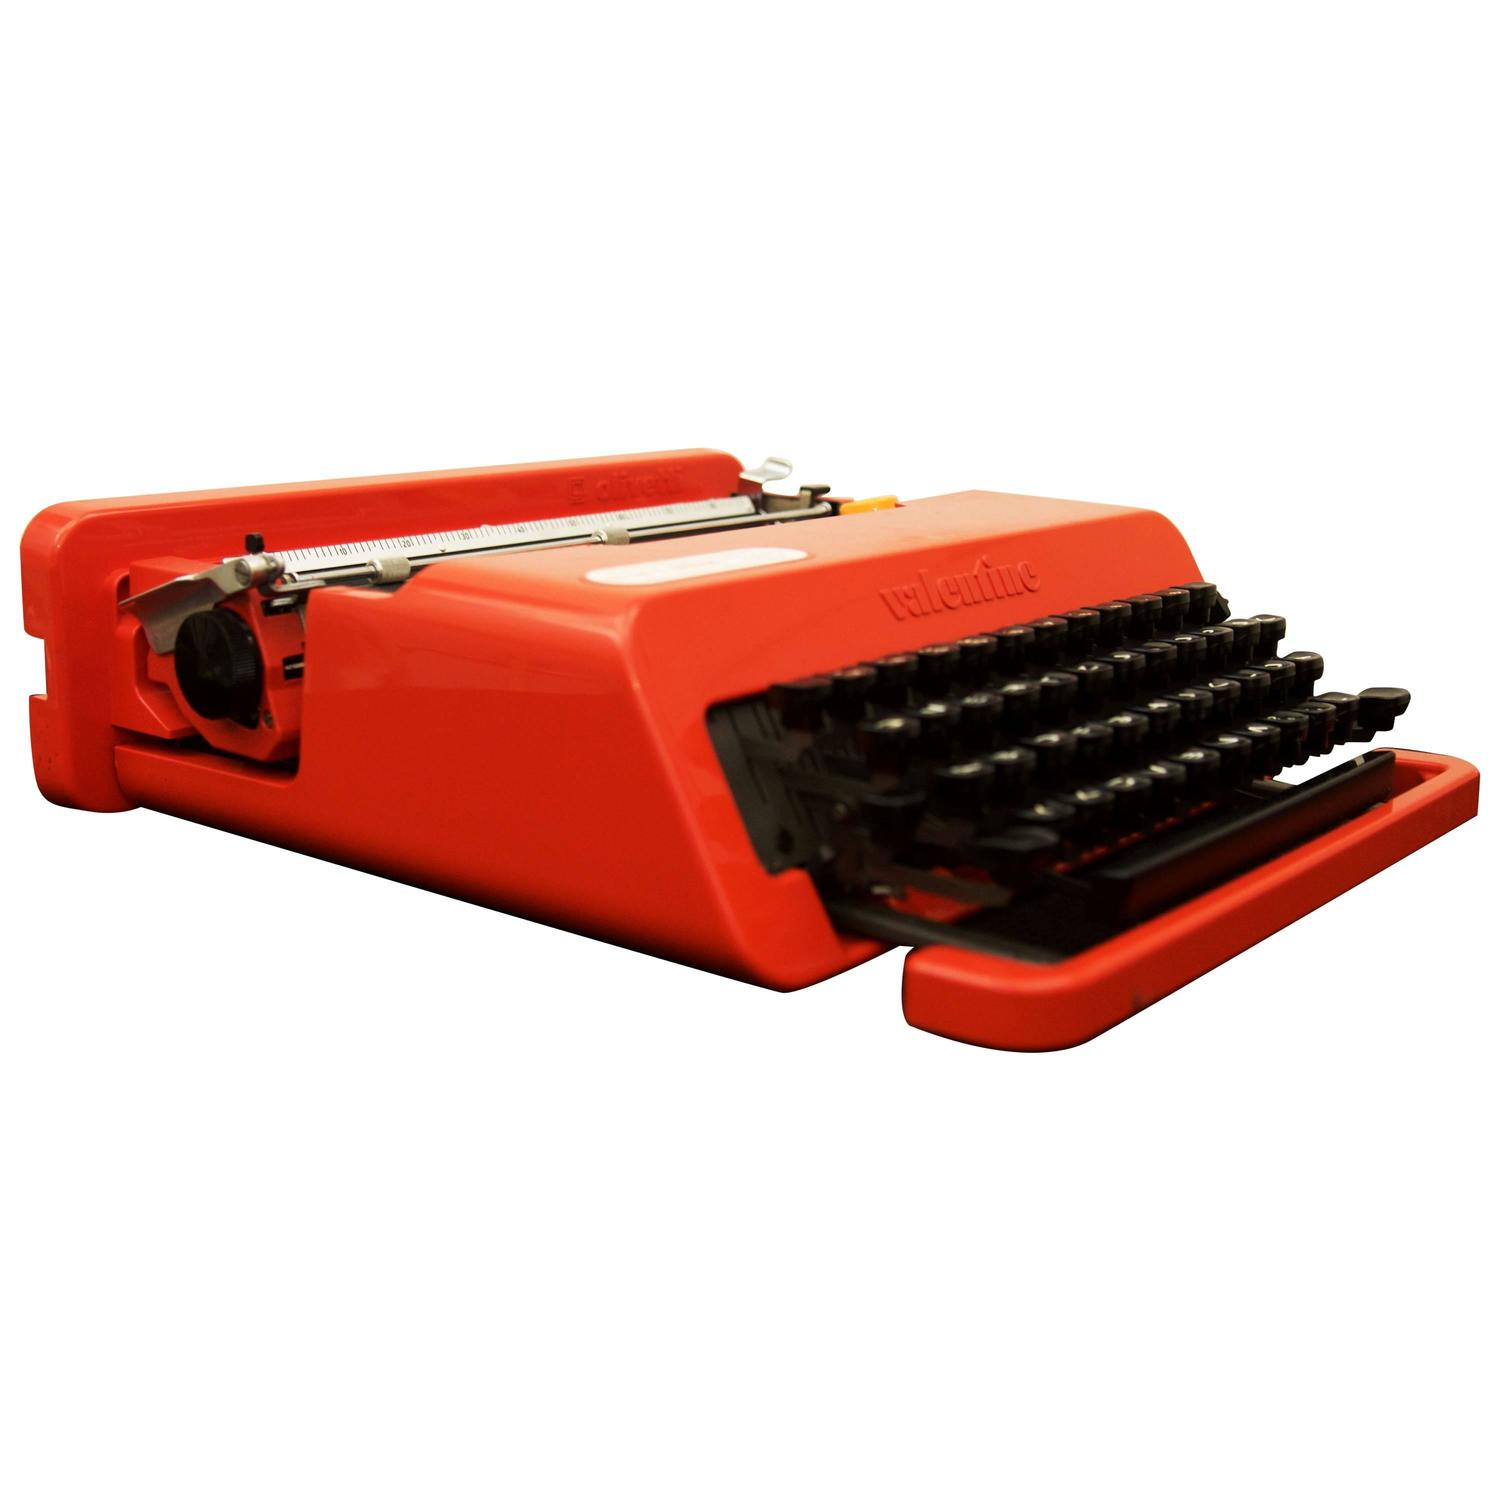 Olivetti Valentine Typewriter By Ettore Sottsass For